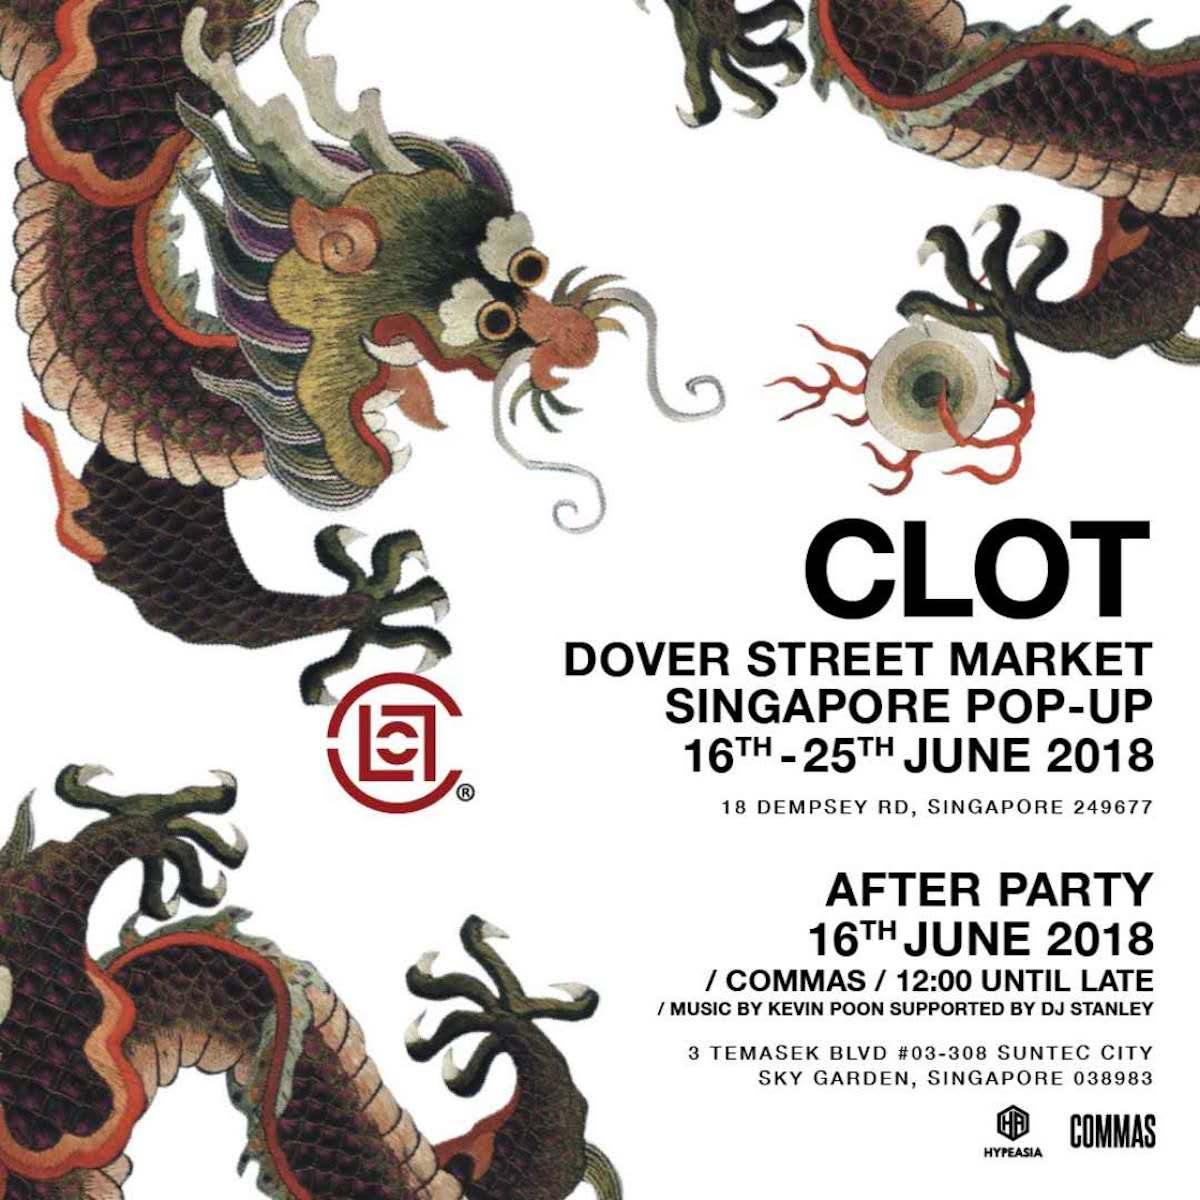 CLOT at Dover Street Market Singapore